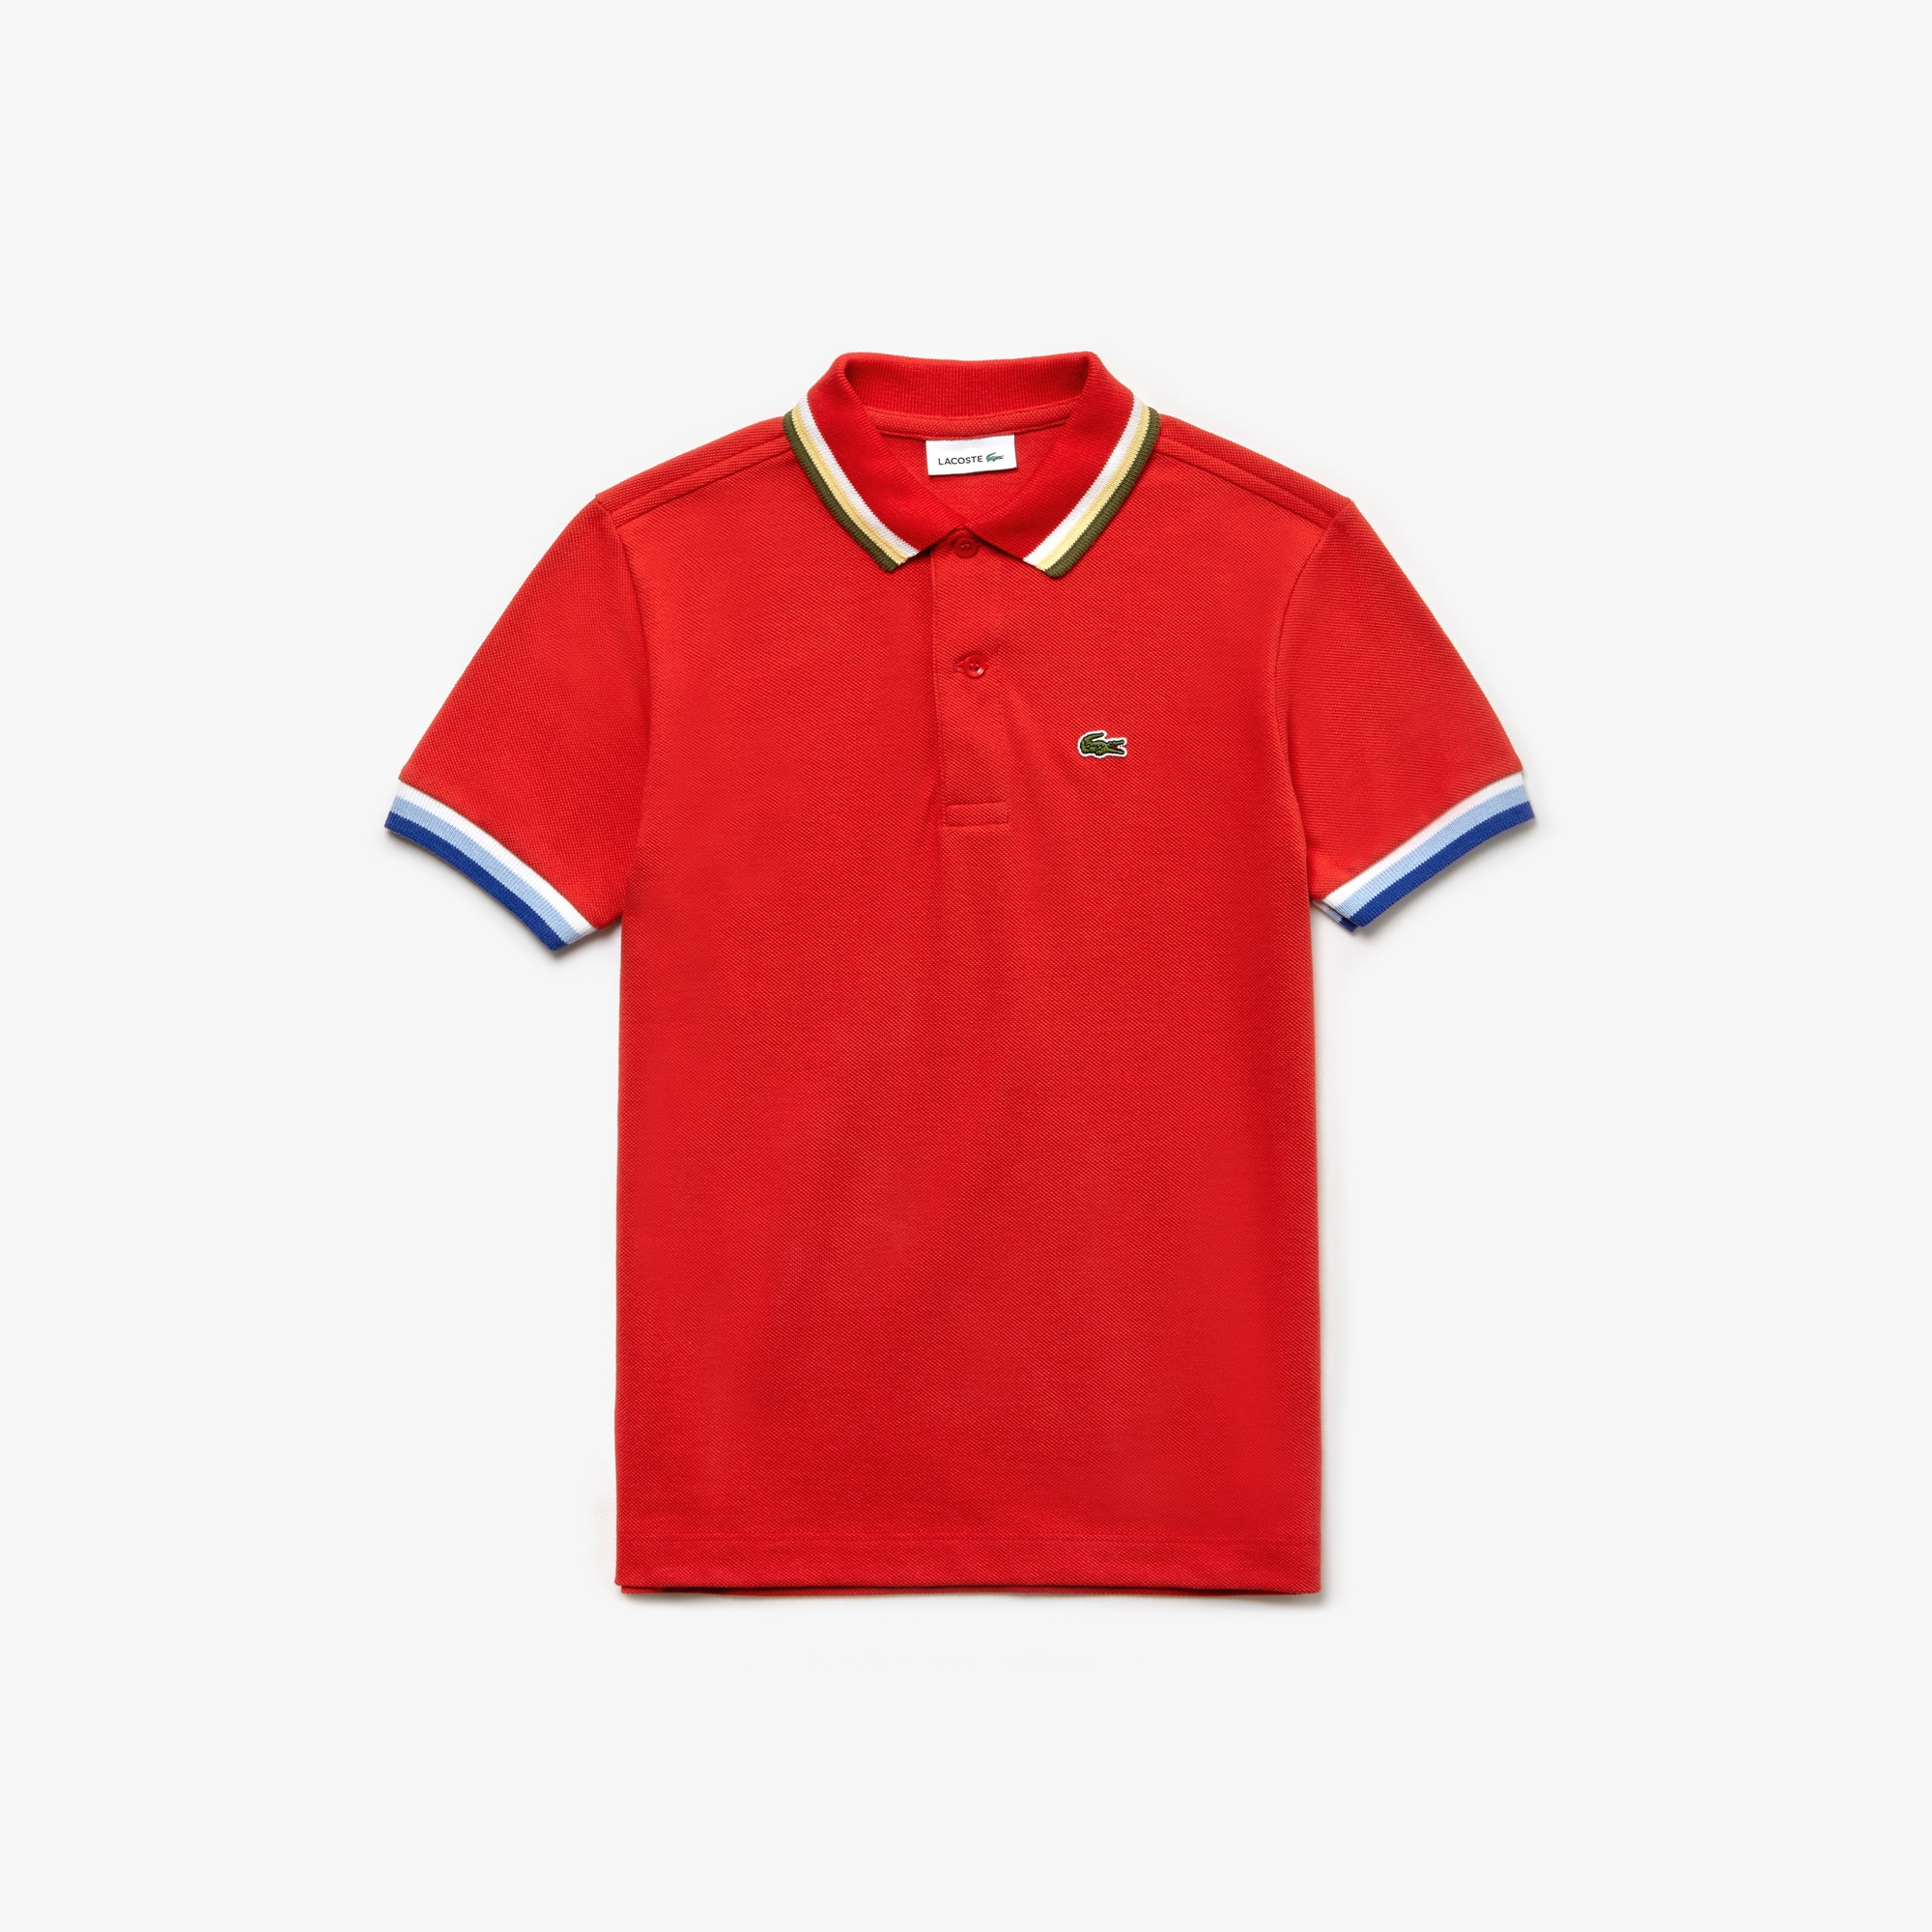 ecb6f9681f Boy's Polo Shirts | The Lacoste Polo For Kids | LACOSTE